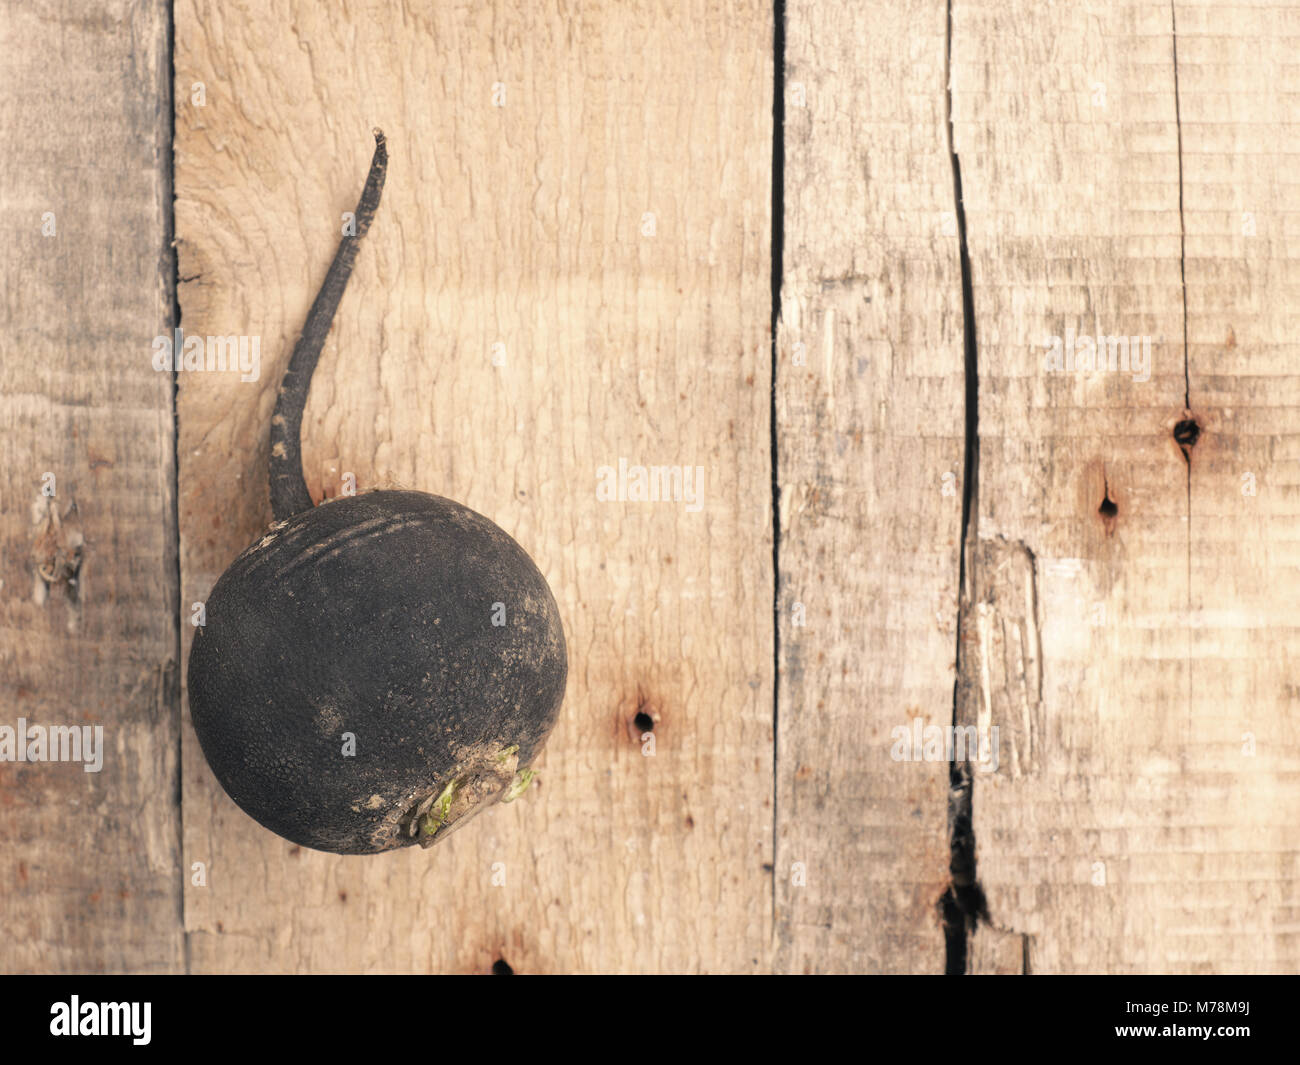 Black winter radish on a rustic wooden table, view from above with space for text or image - Stock Image